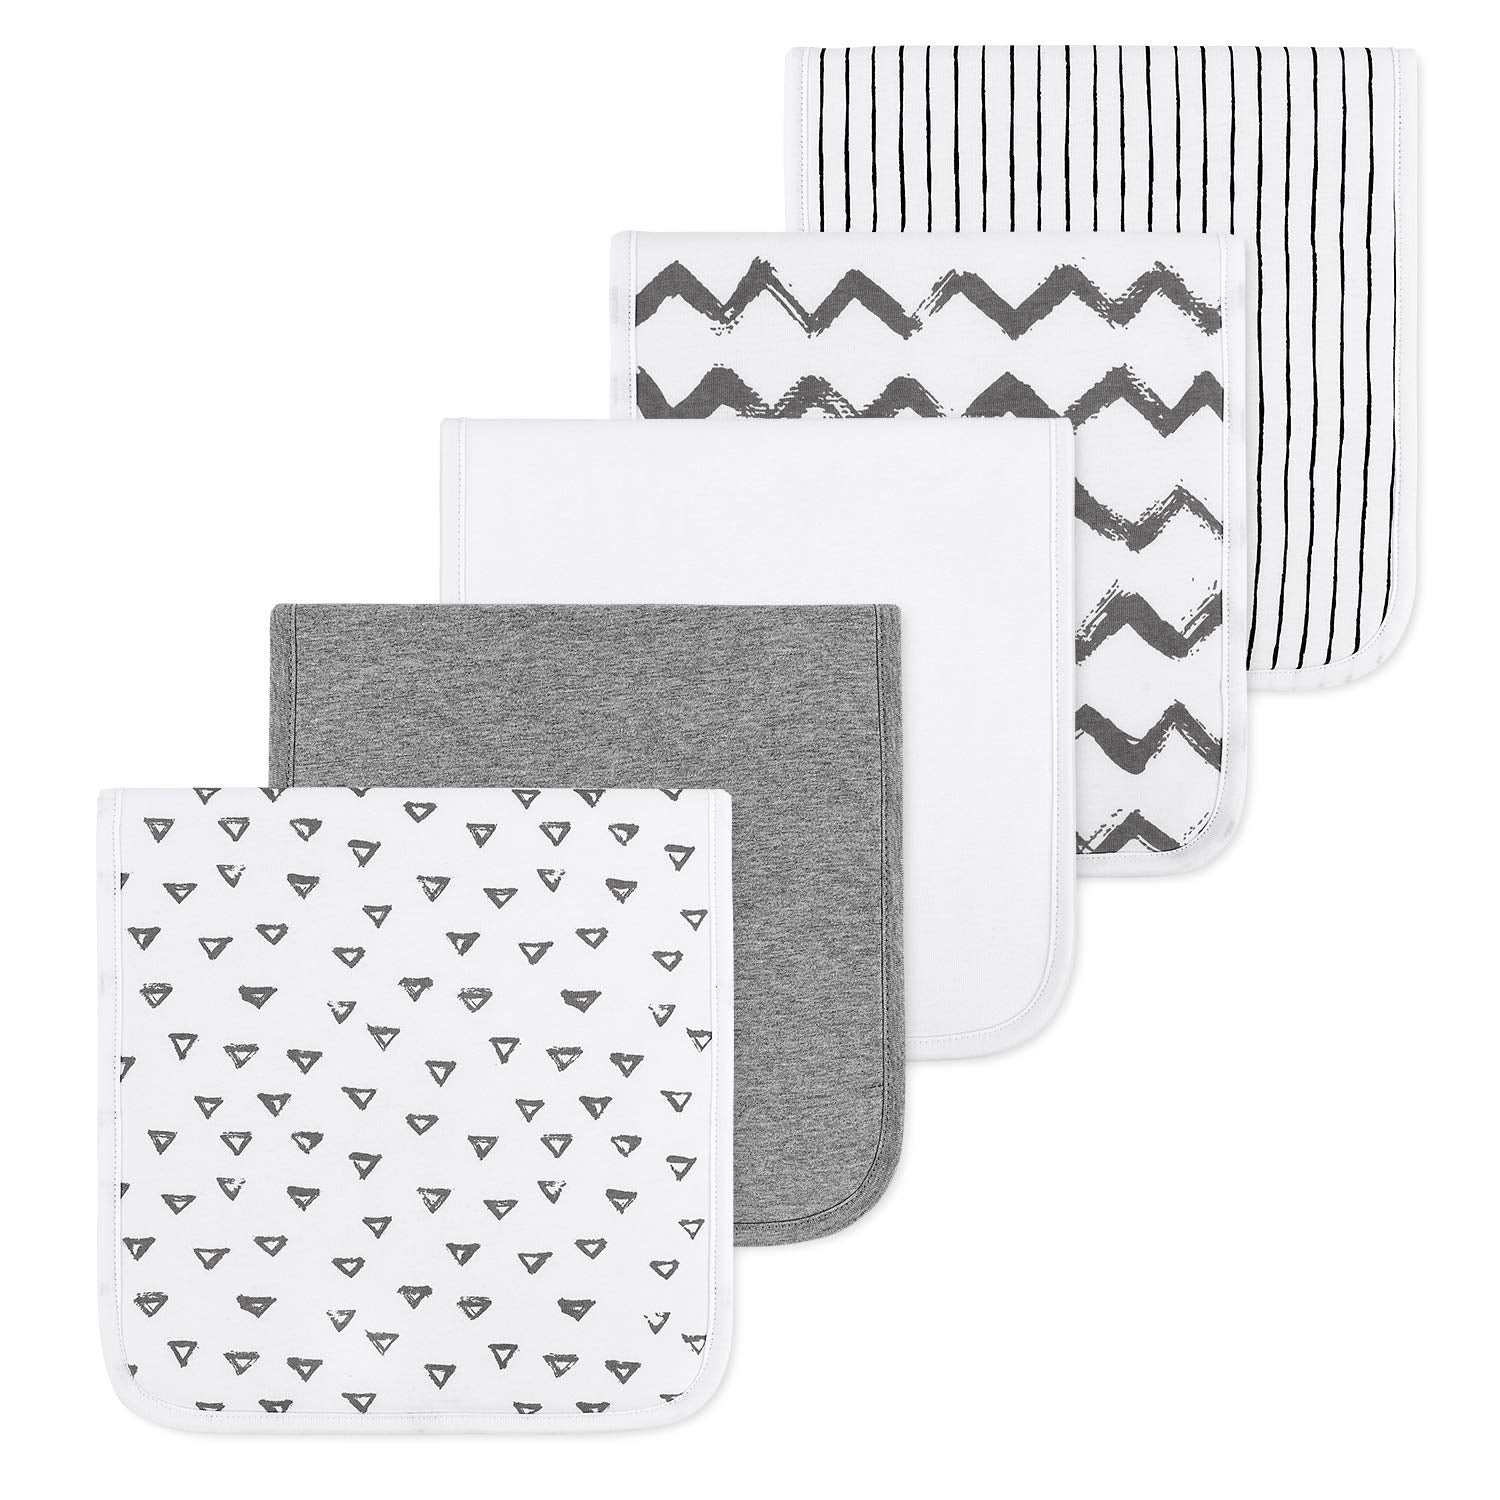 100% Organic Cotton Burp Cloths - 5 packs